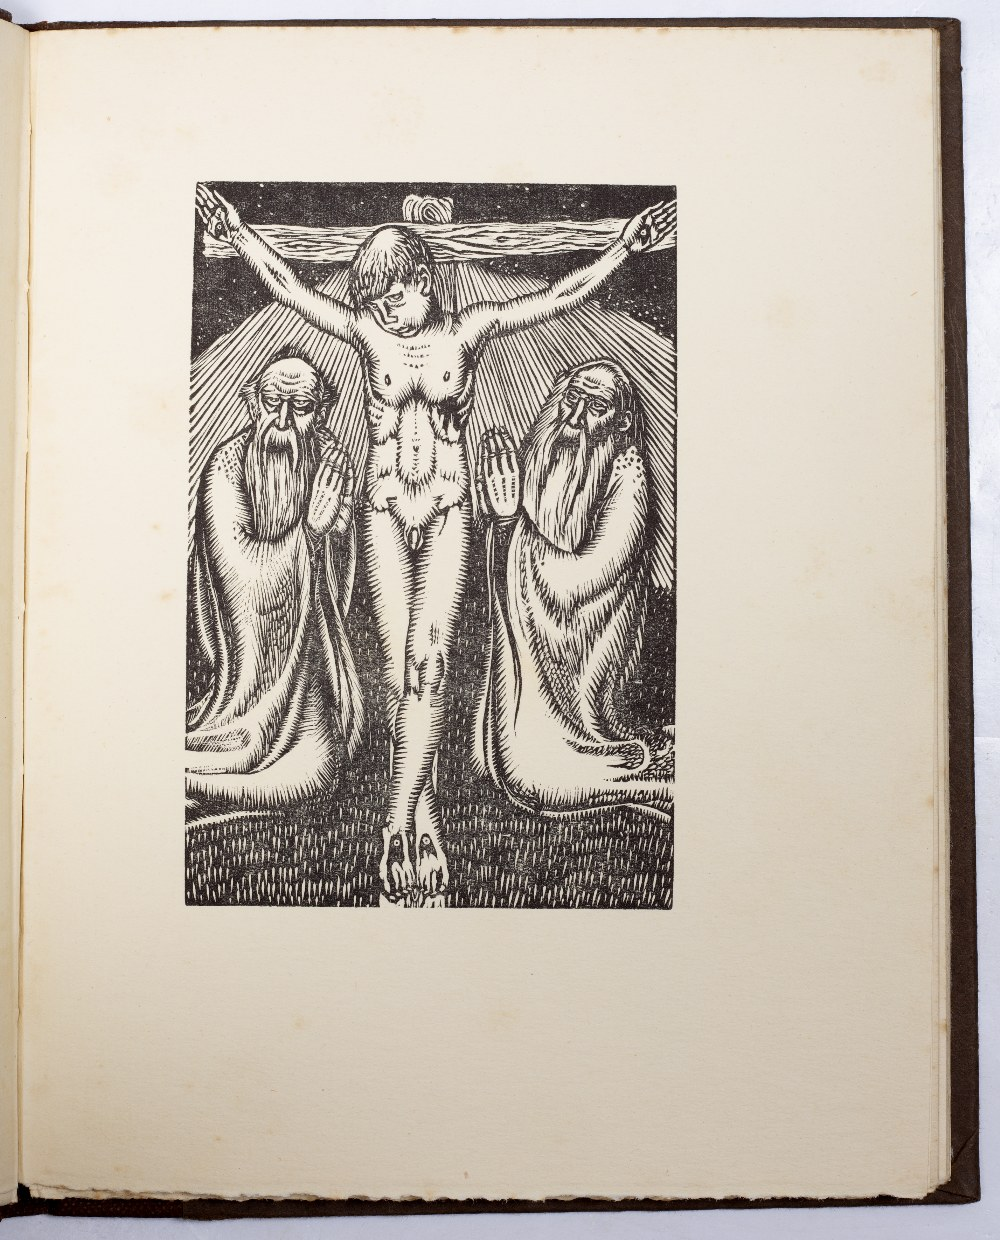 CHUBB, Ralph Nicholas (1892-1960), English Poet and Printer Songs of Mankind decorated with wood - Image 5 of 5